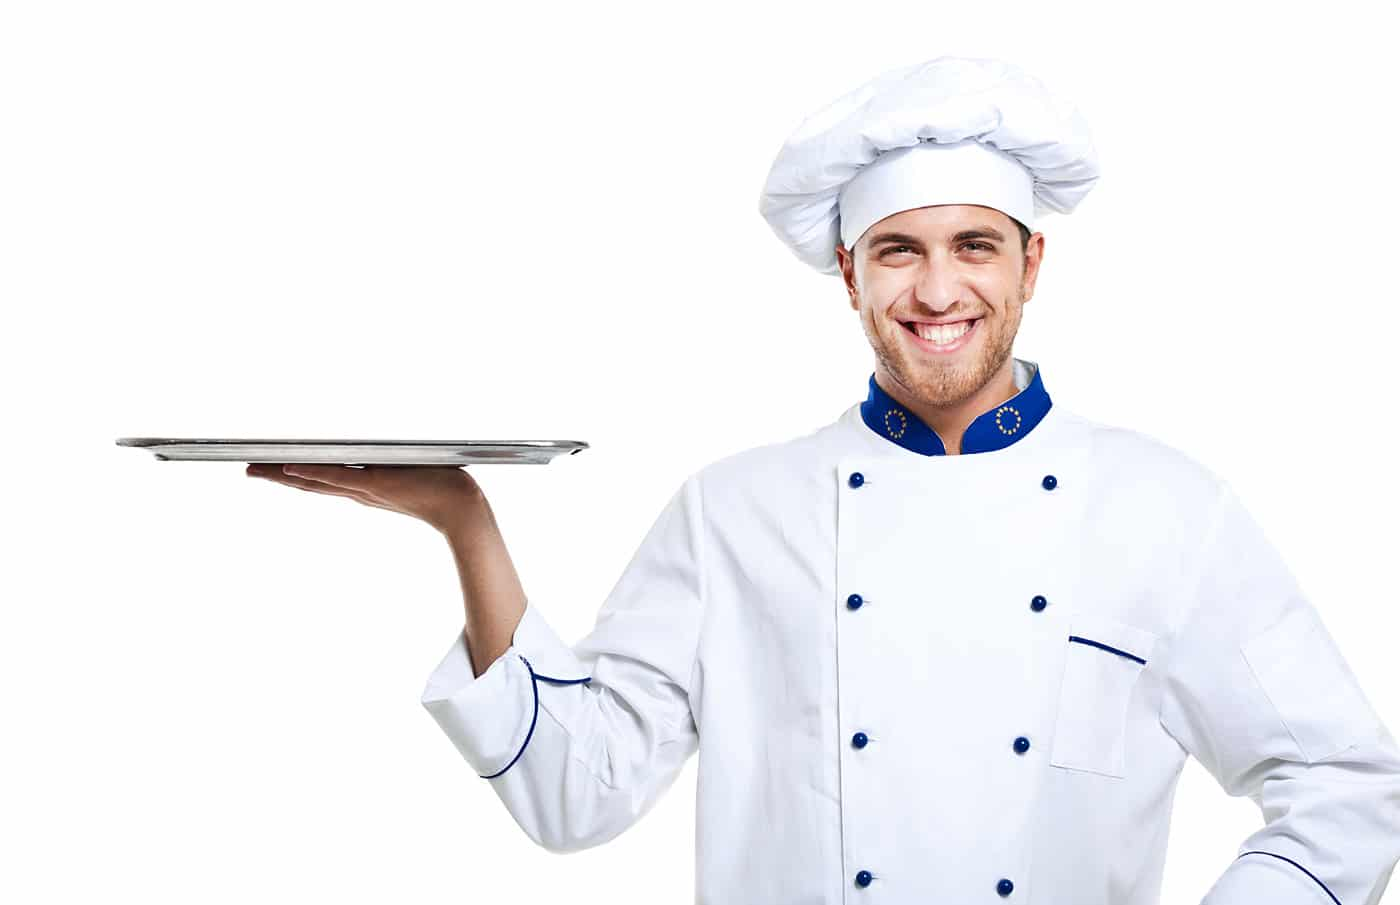 69636701-chef-wallpapers